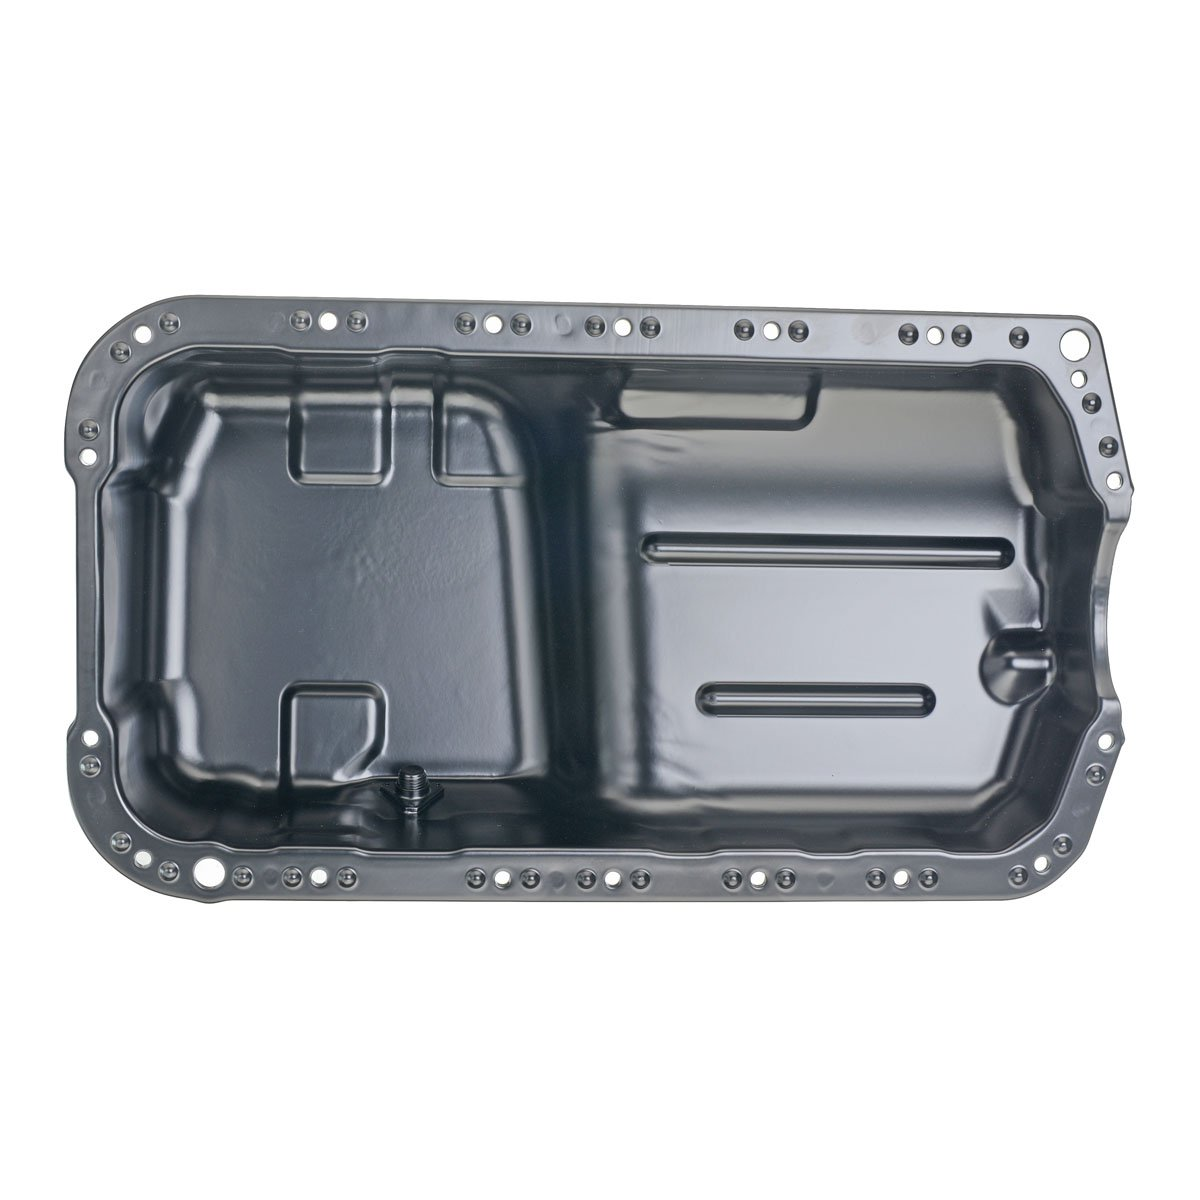 A-Premium Engine Oil Pan for Honda Accord 1990-1997 Prelude 1992-1996 Odyssey 1995-1997 Isuzu Oasis 1996-1997 Acura CL 1997